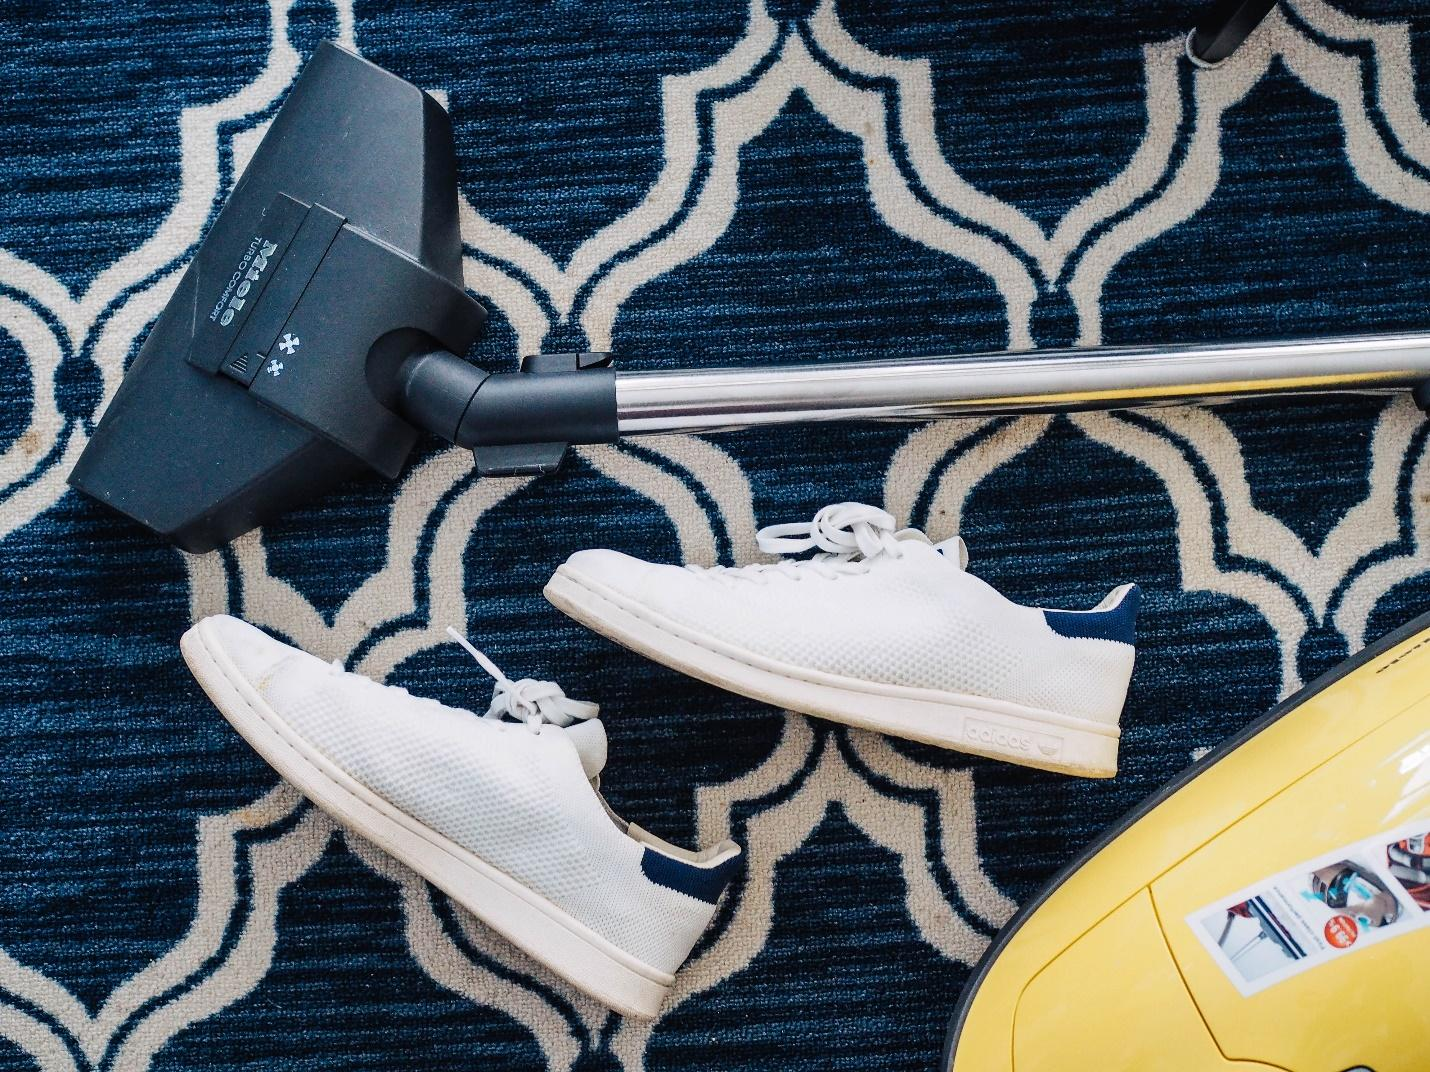 Vacuuming your carpet can prevent bed bugs temporarily